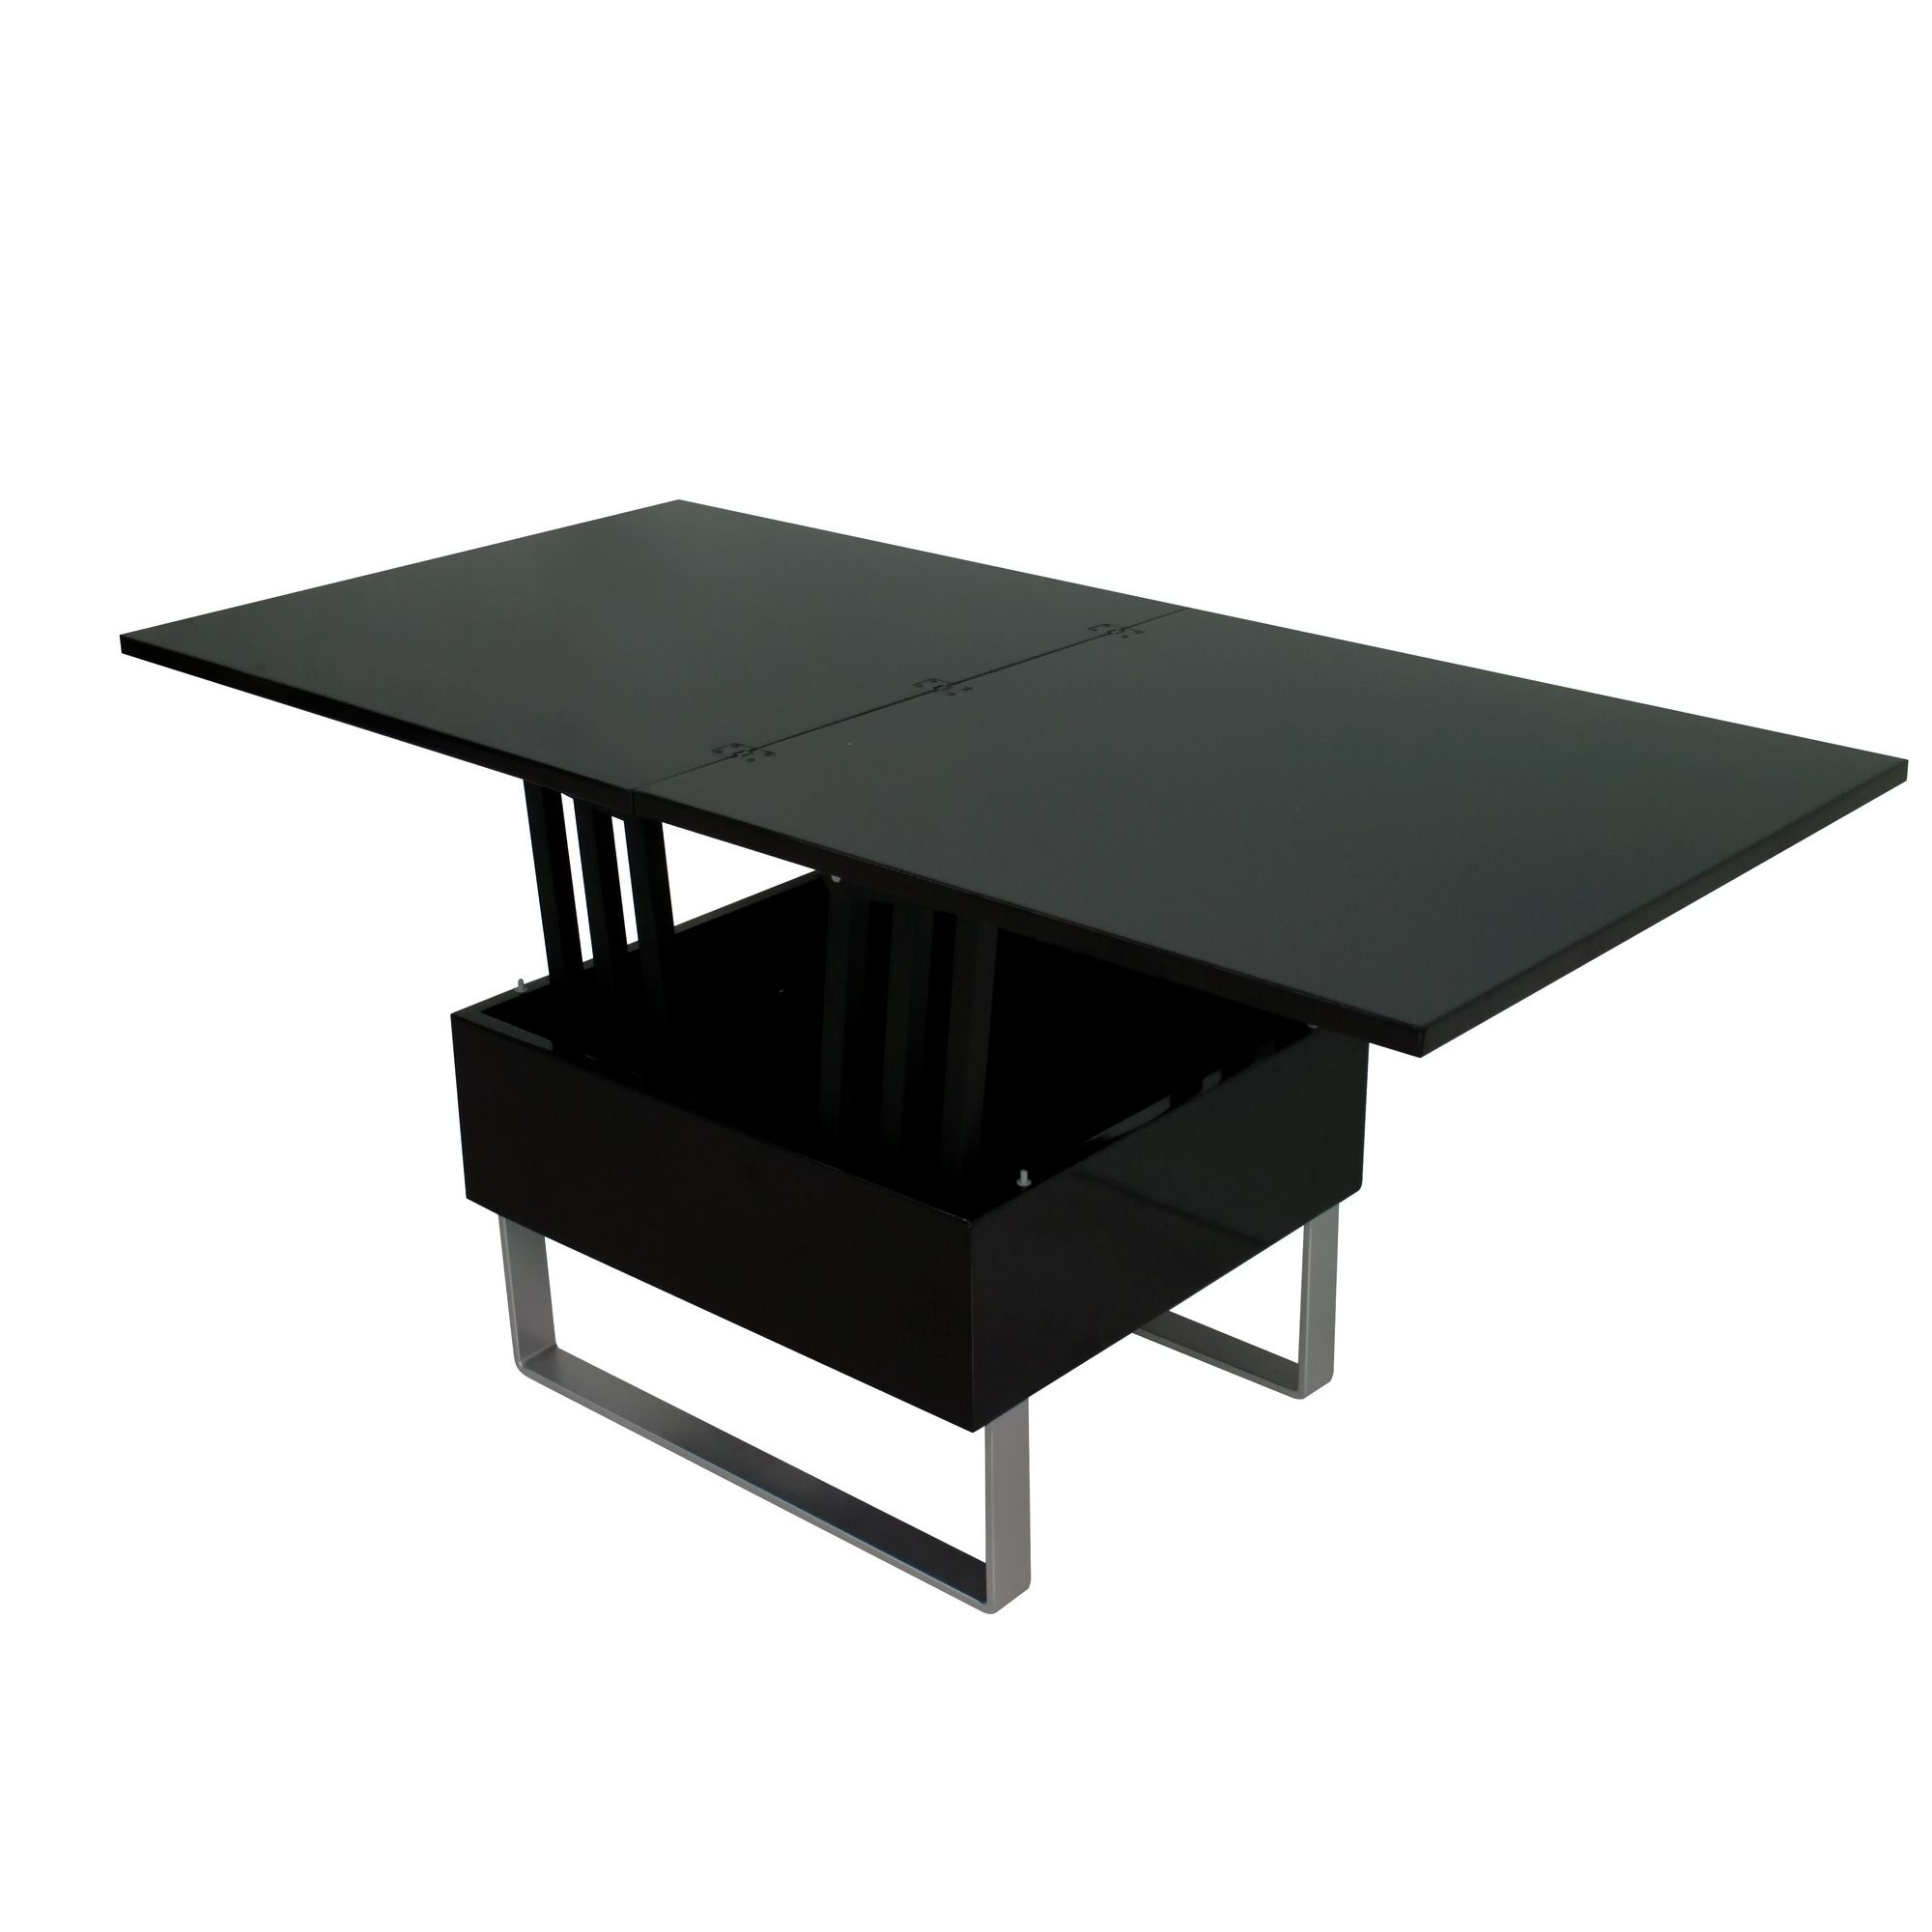 Table basse noir laque ikea maison design for Table basse design noir